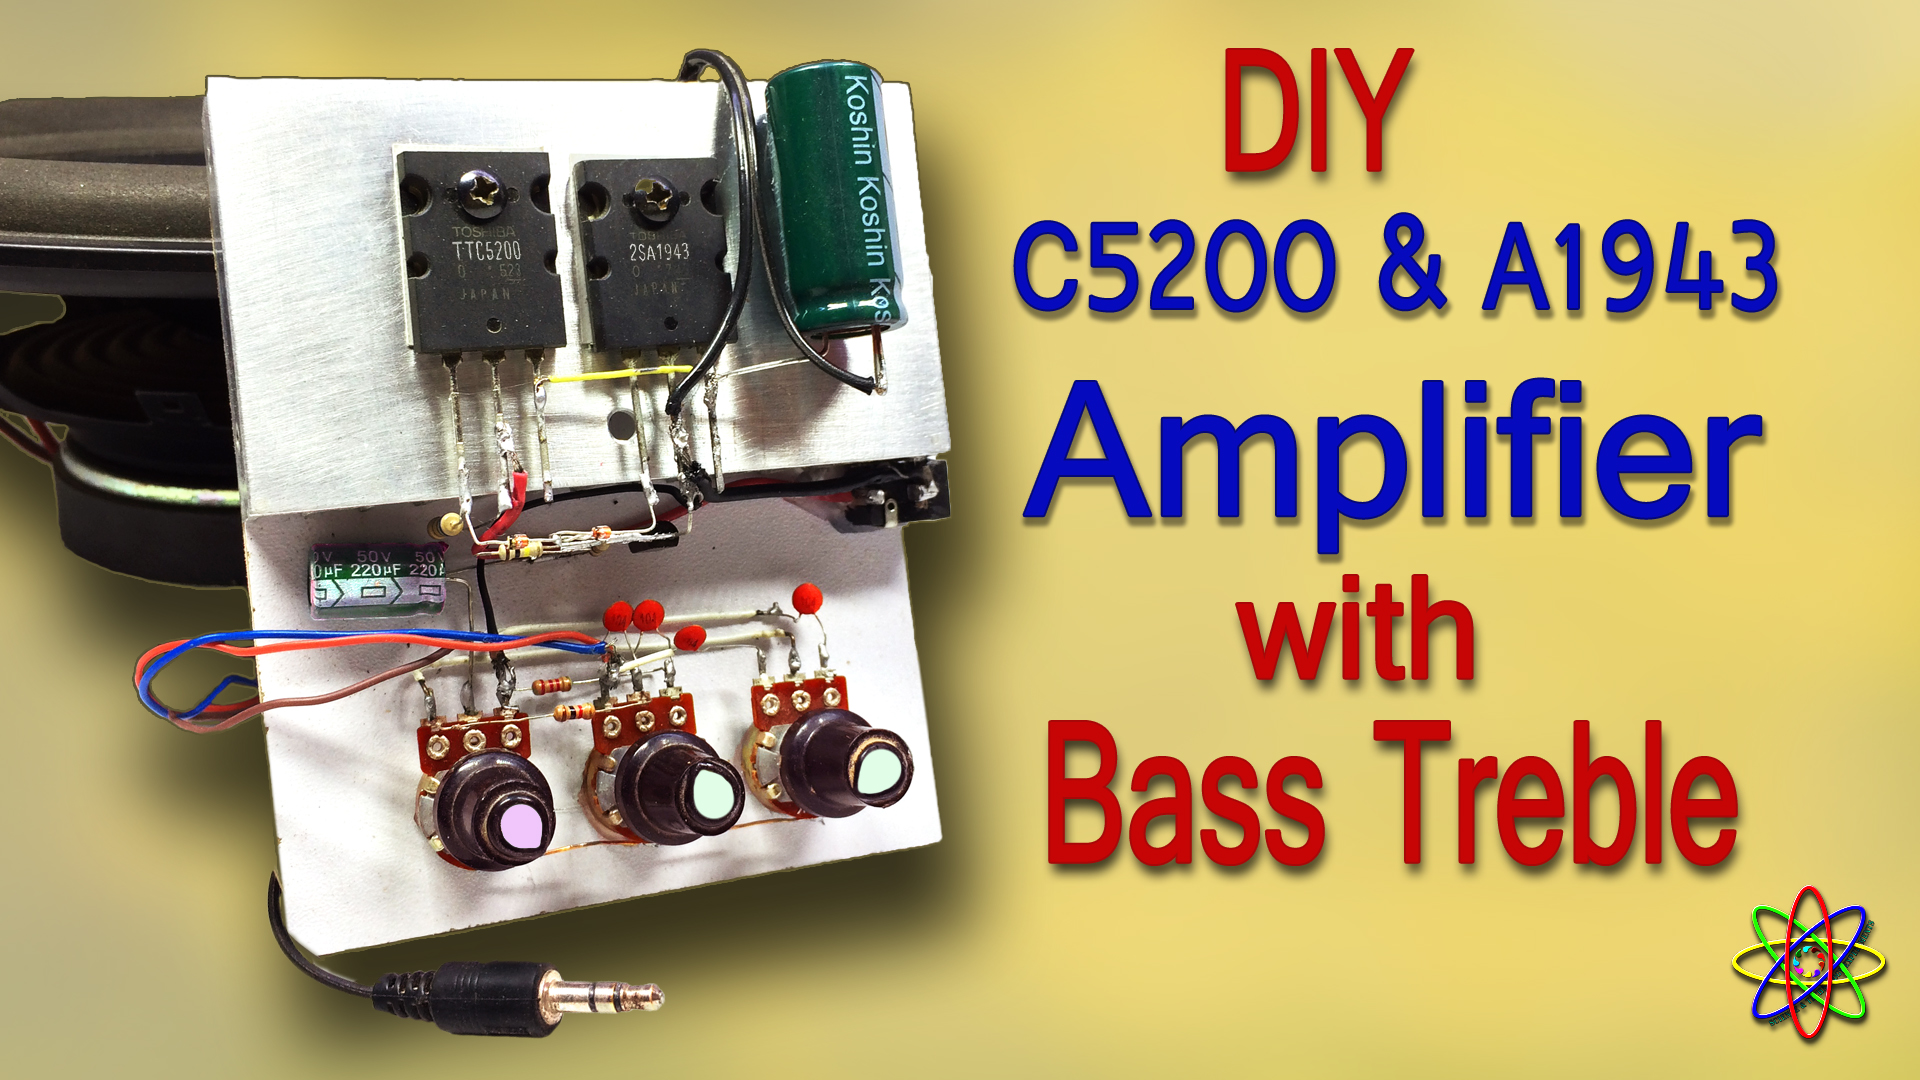 DIY C5200 A1943 amplifier homemade